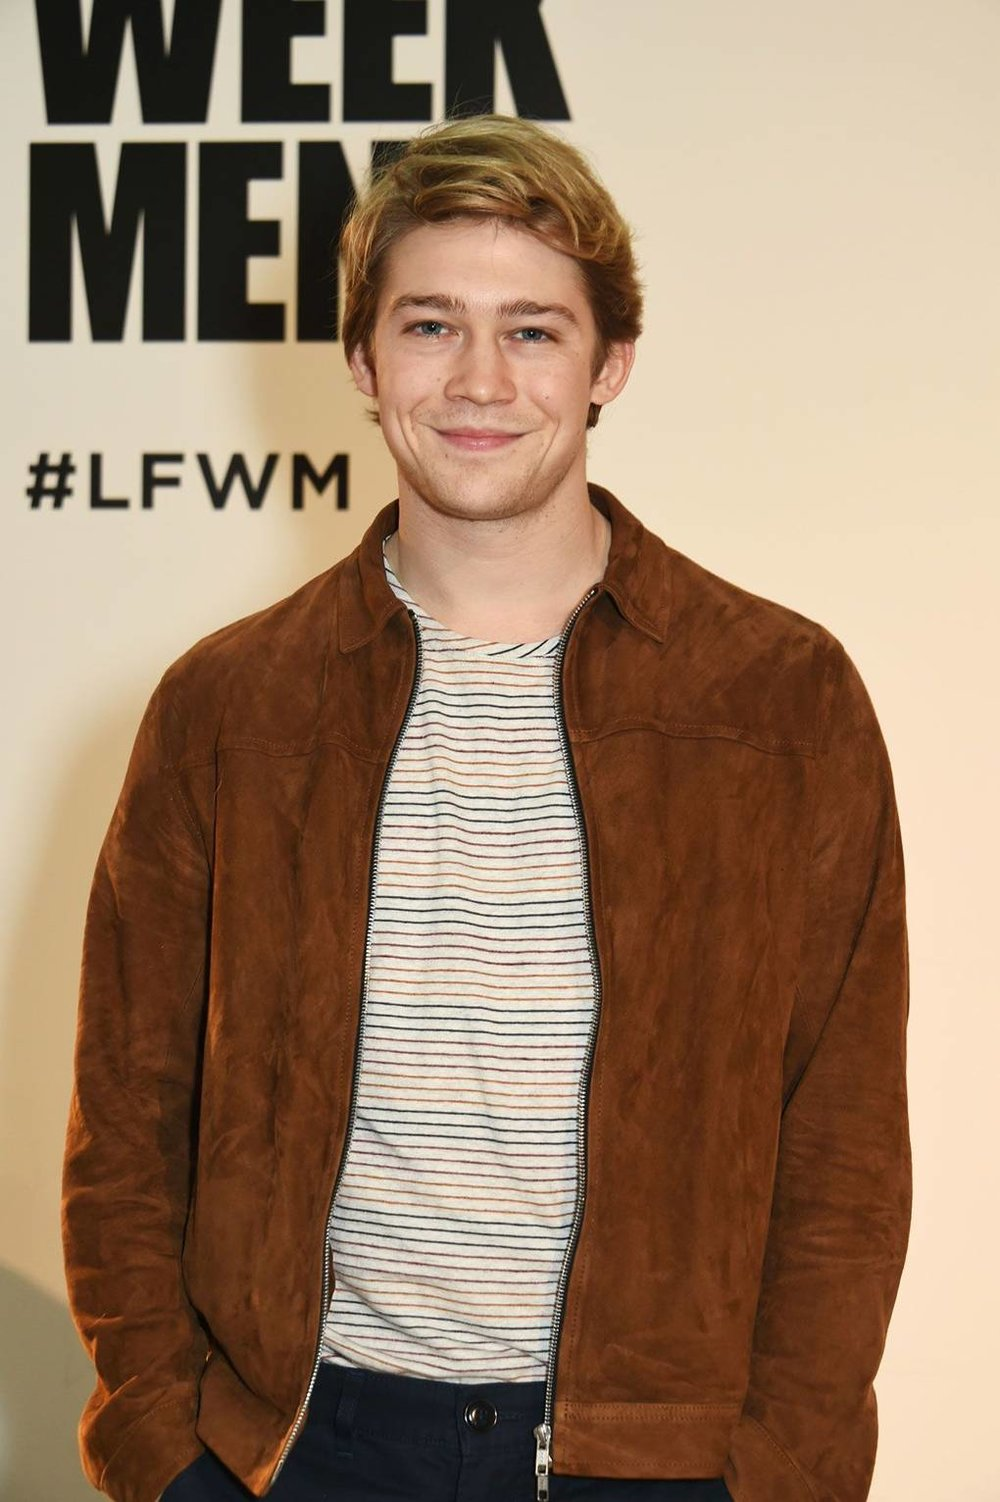 Joe-Alwyn-vogue-17May2017-getty-4.jpg